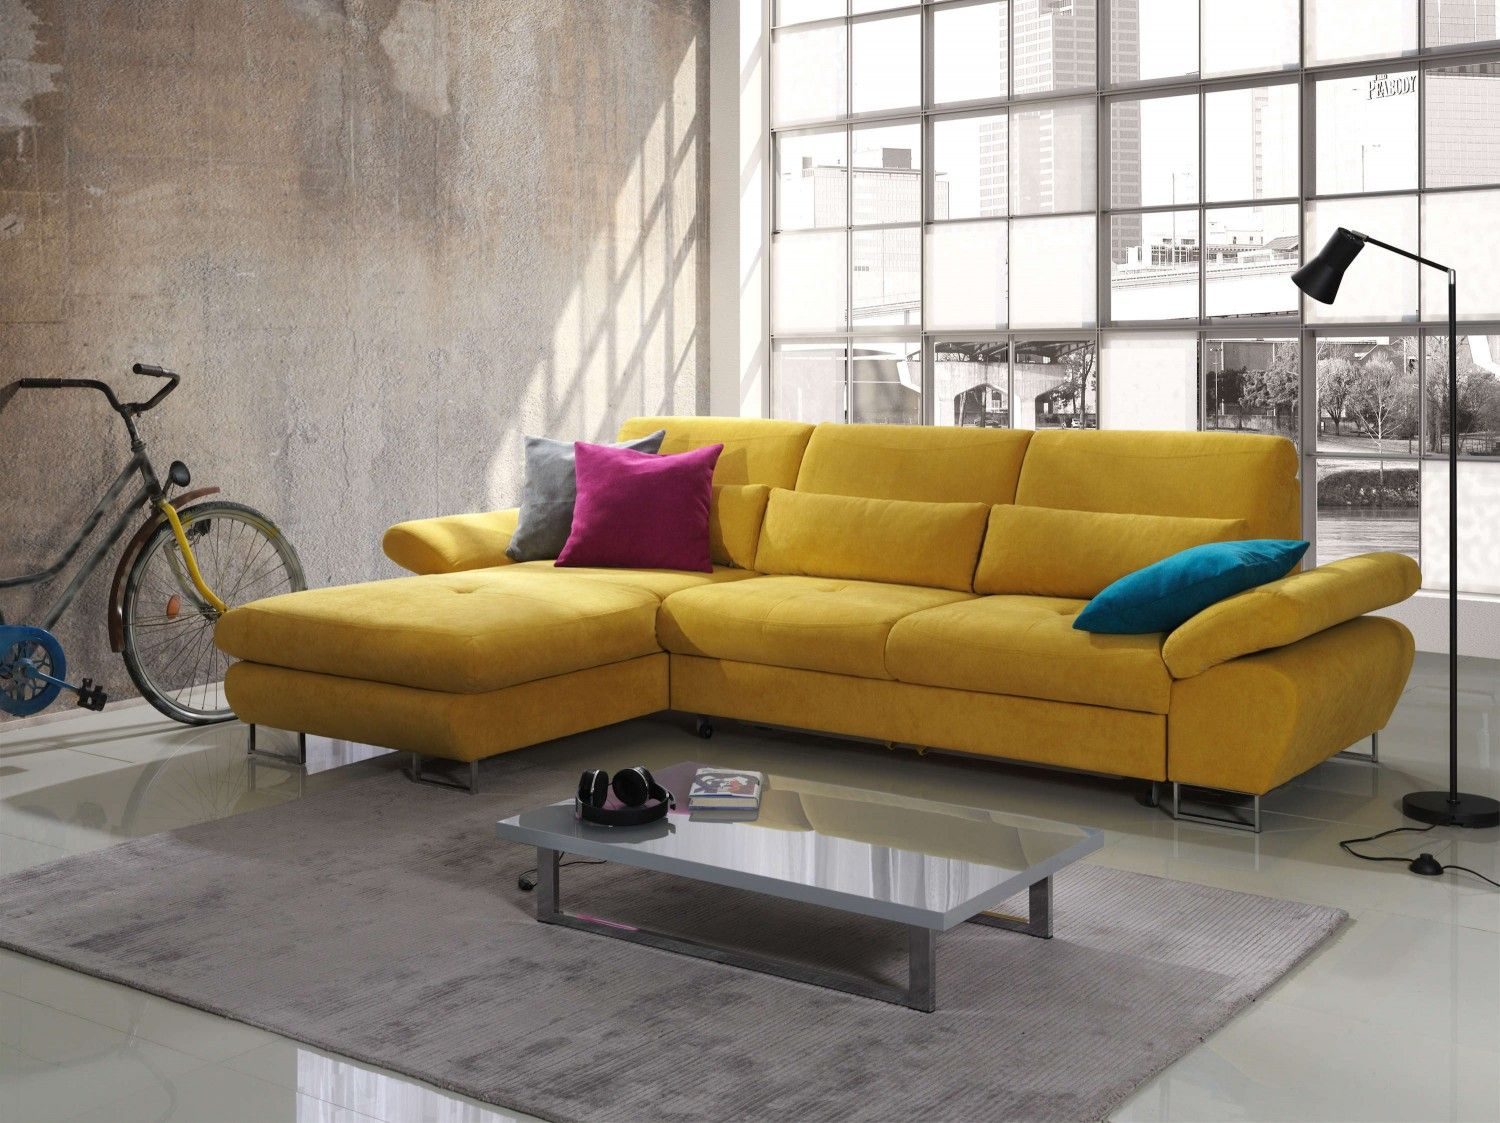 Shop High Quality Exclusive Selection Of Modern U0026 Contemporary Furniture  For Bedroom, Dining Room, Living Room Online Or In Store   Brooklyn, New  York U0026 NJ